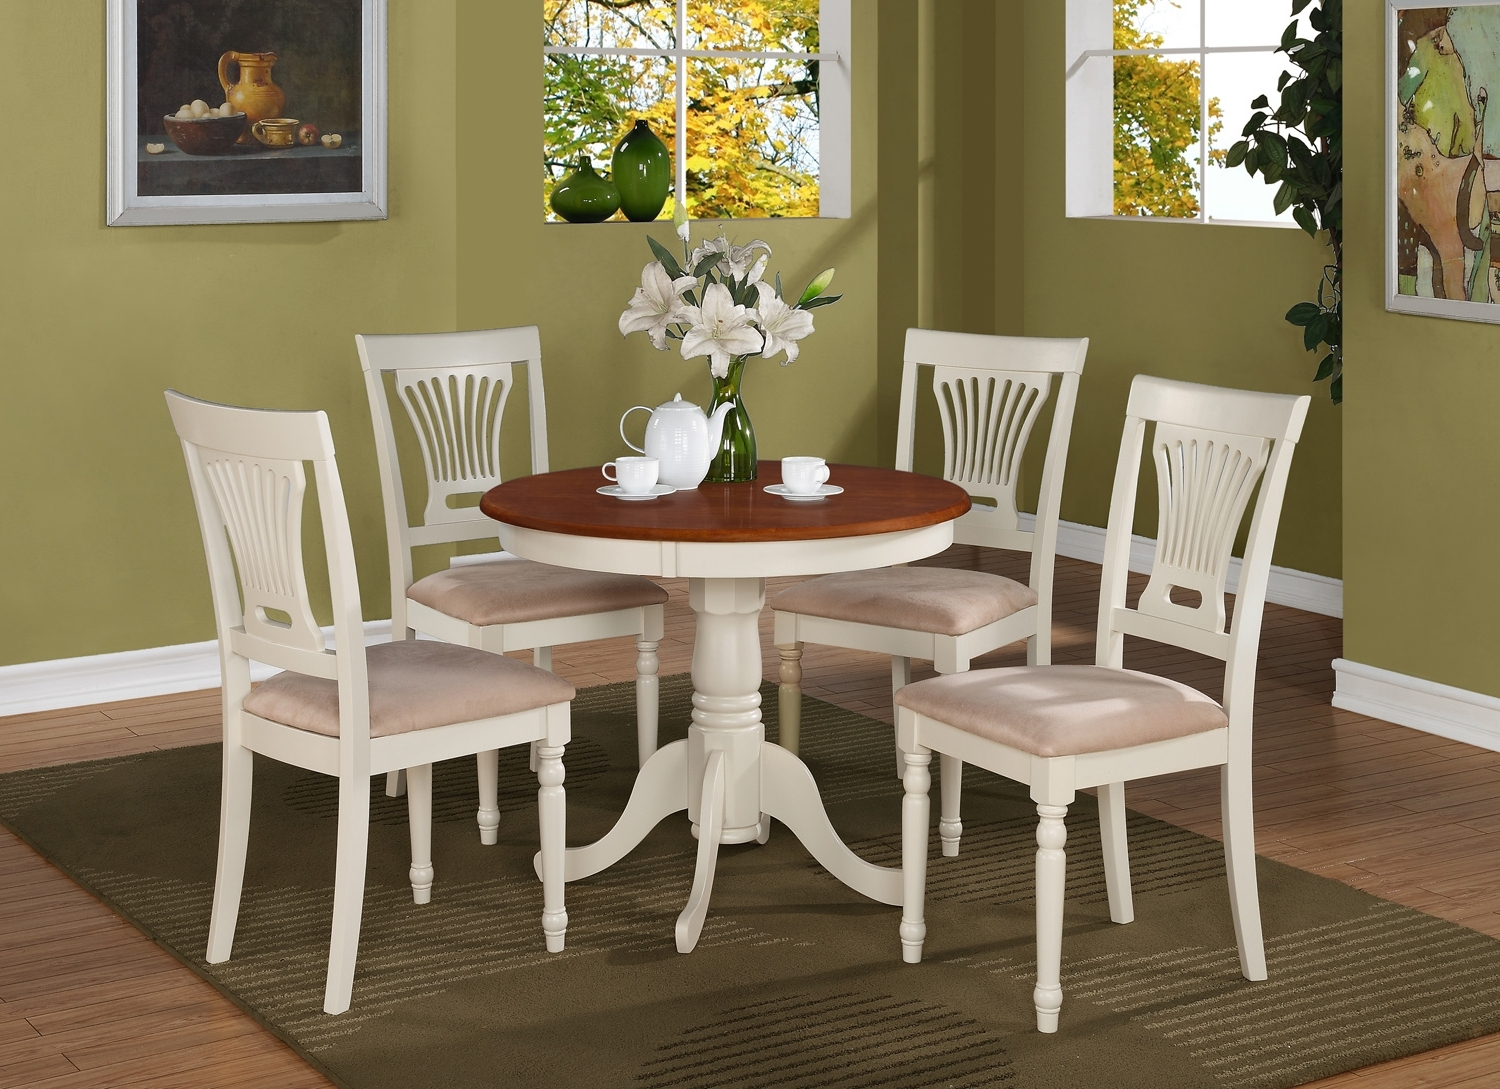 5 Pc Round Small Table Kitchen Table And 4 Padded Chairs Buttermilk for Most Recently Released Small Round Dining Table With 4 Chairs